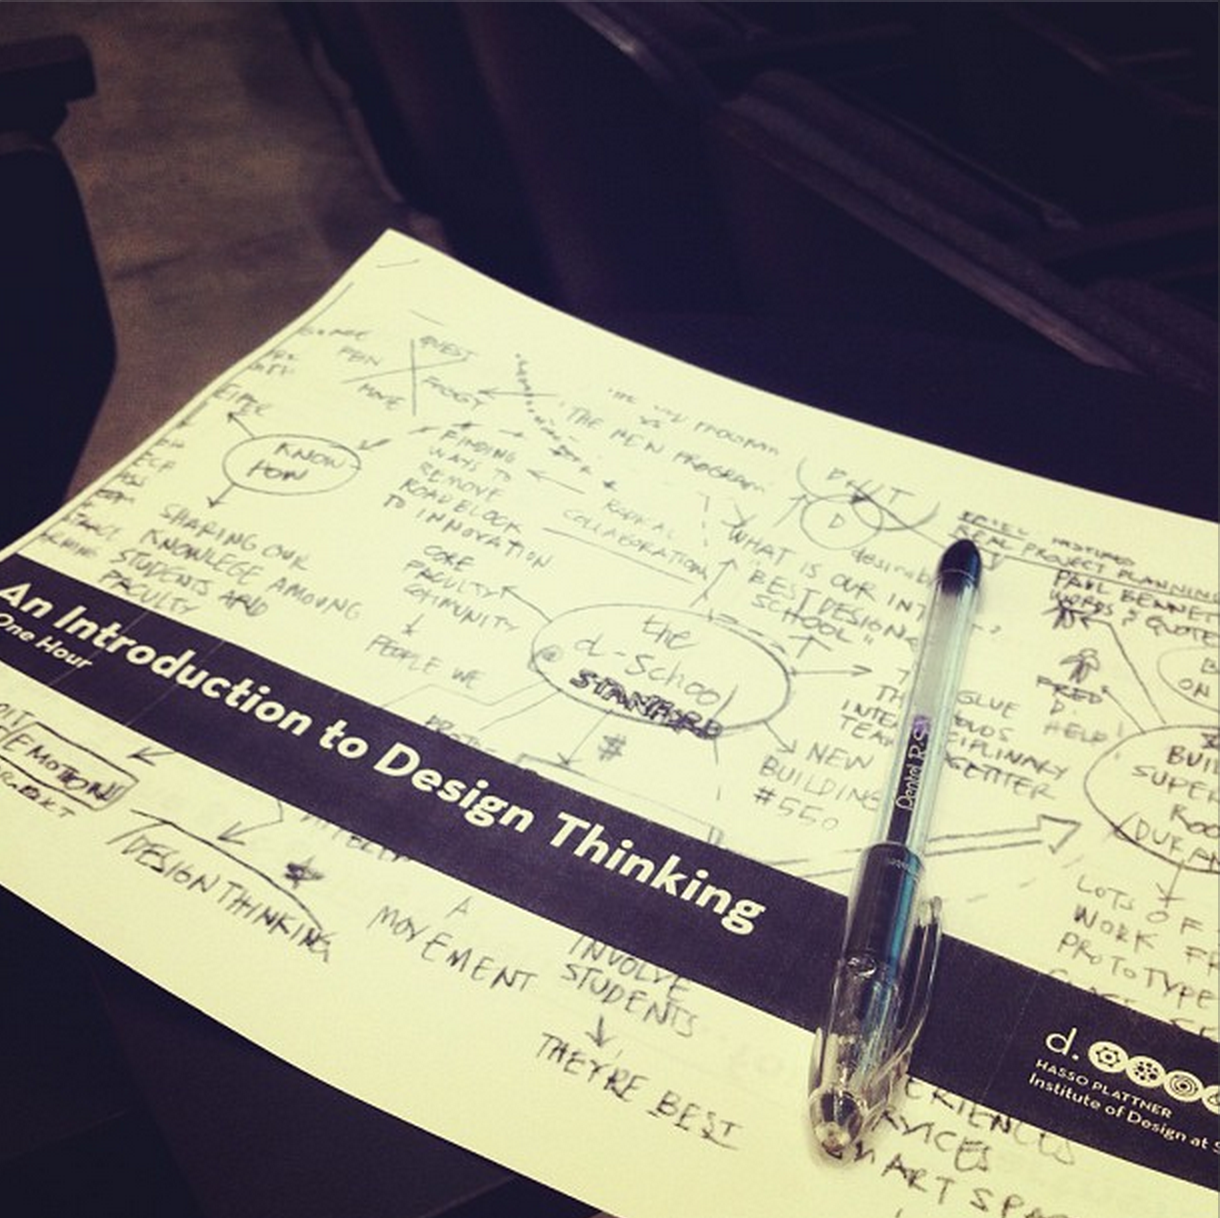 My Introduction to Design Thinking at Stanford